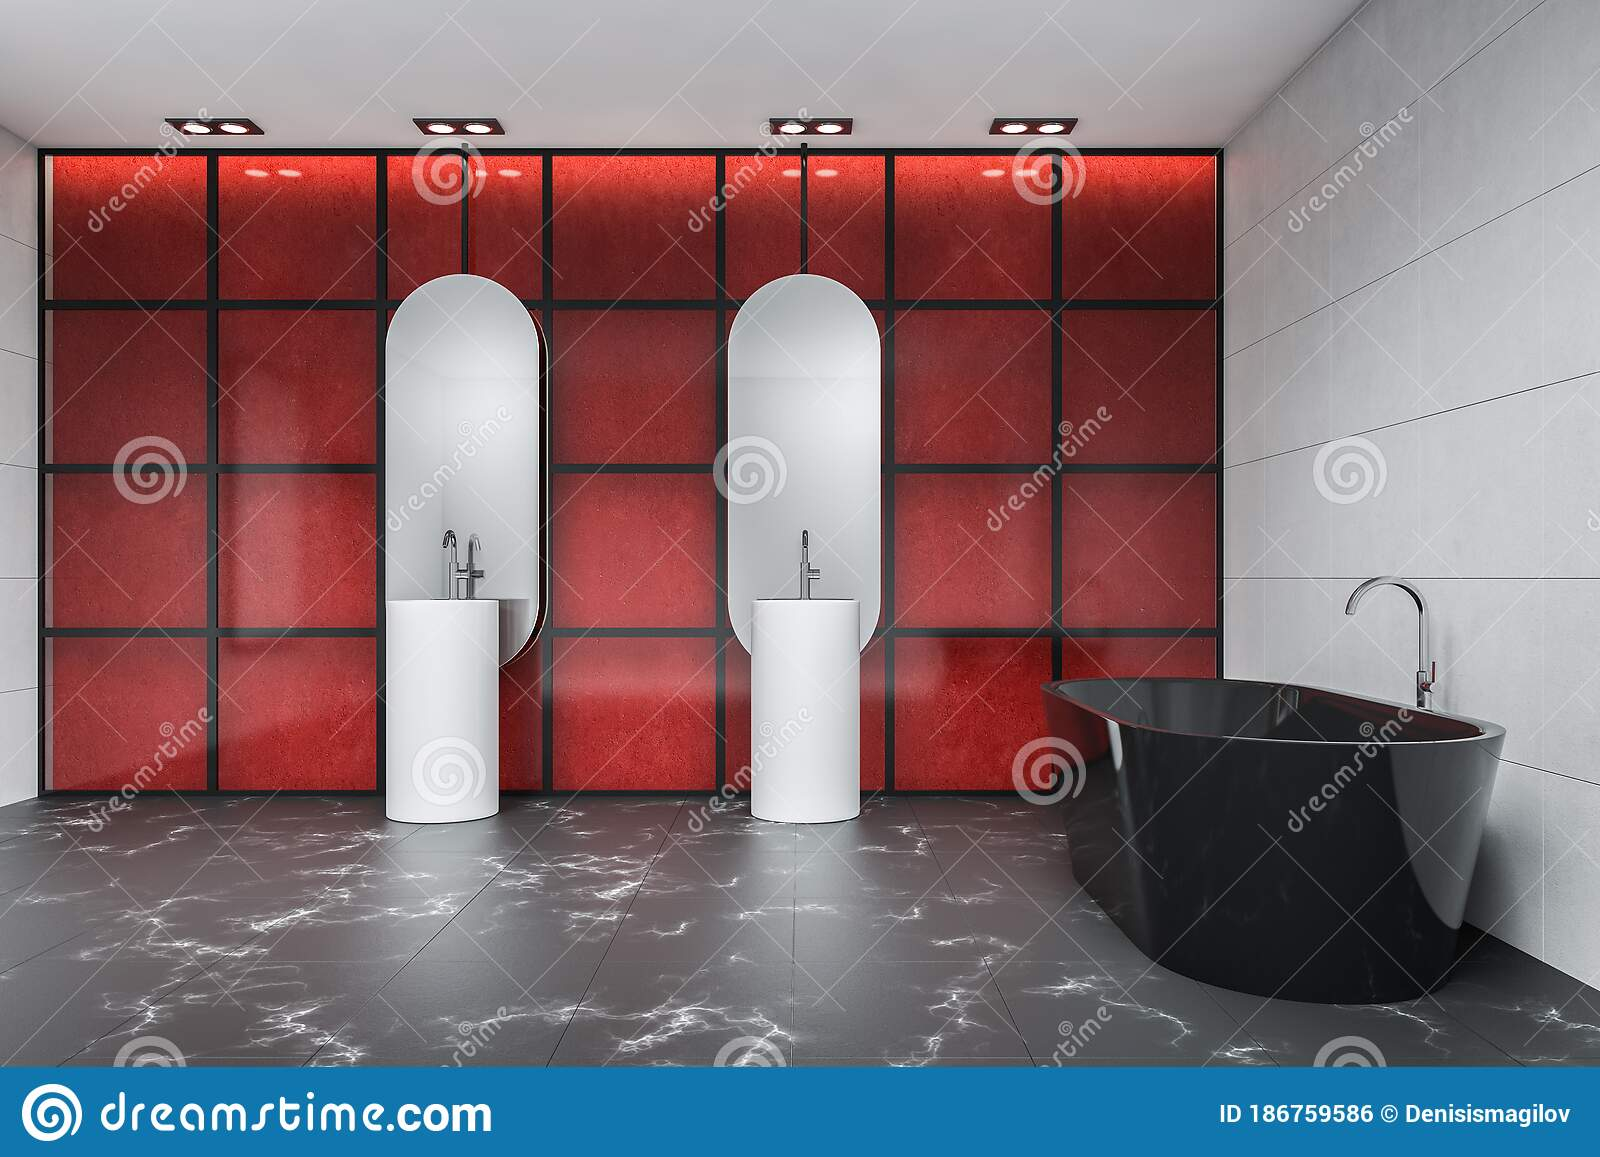 White And Red Tile Bathroom With Sink And Tub Stock Illustration Illustration Of Double Marble 186759586